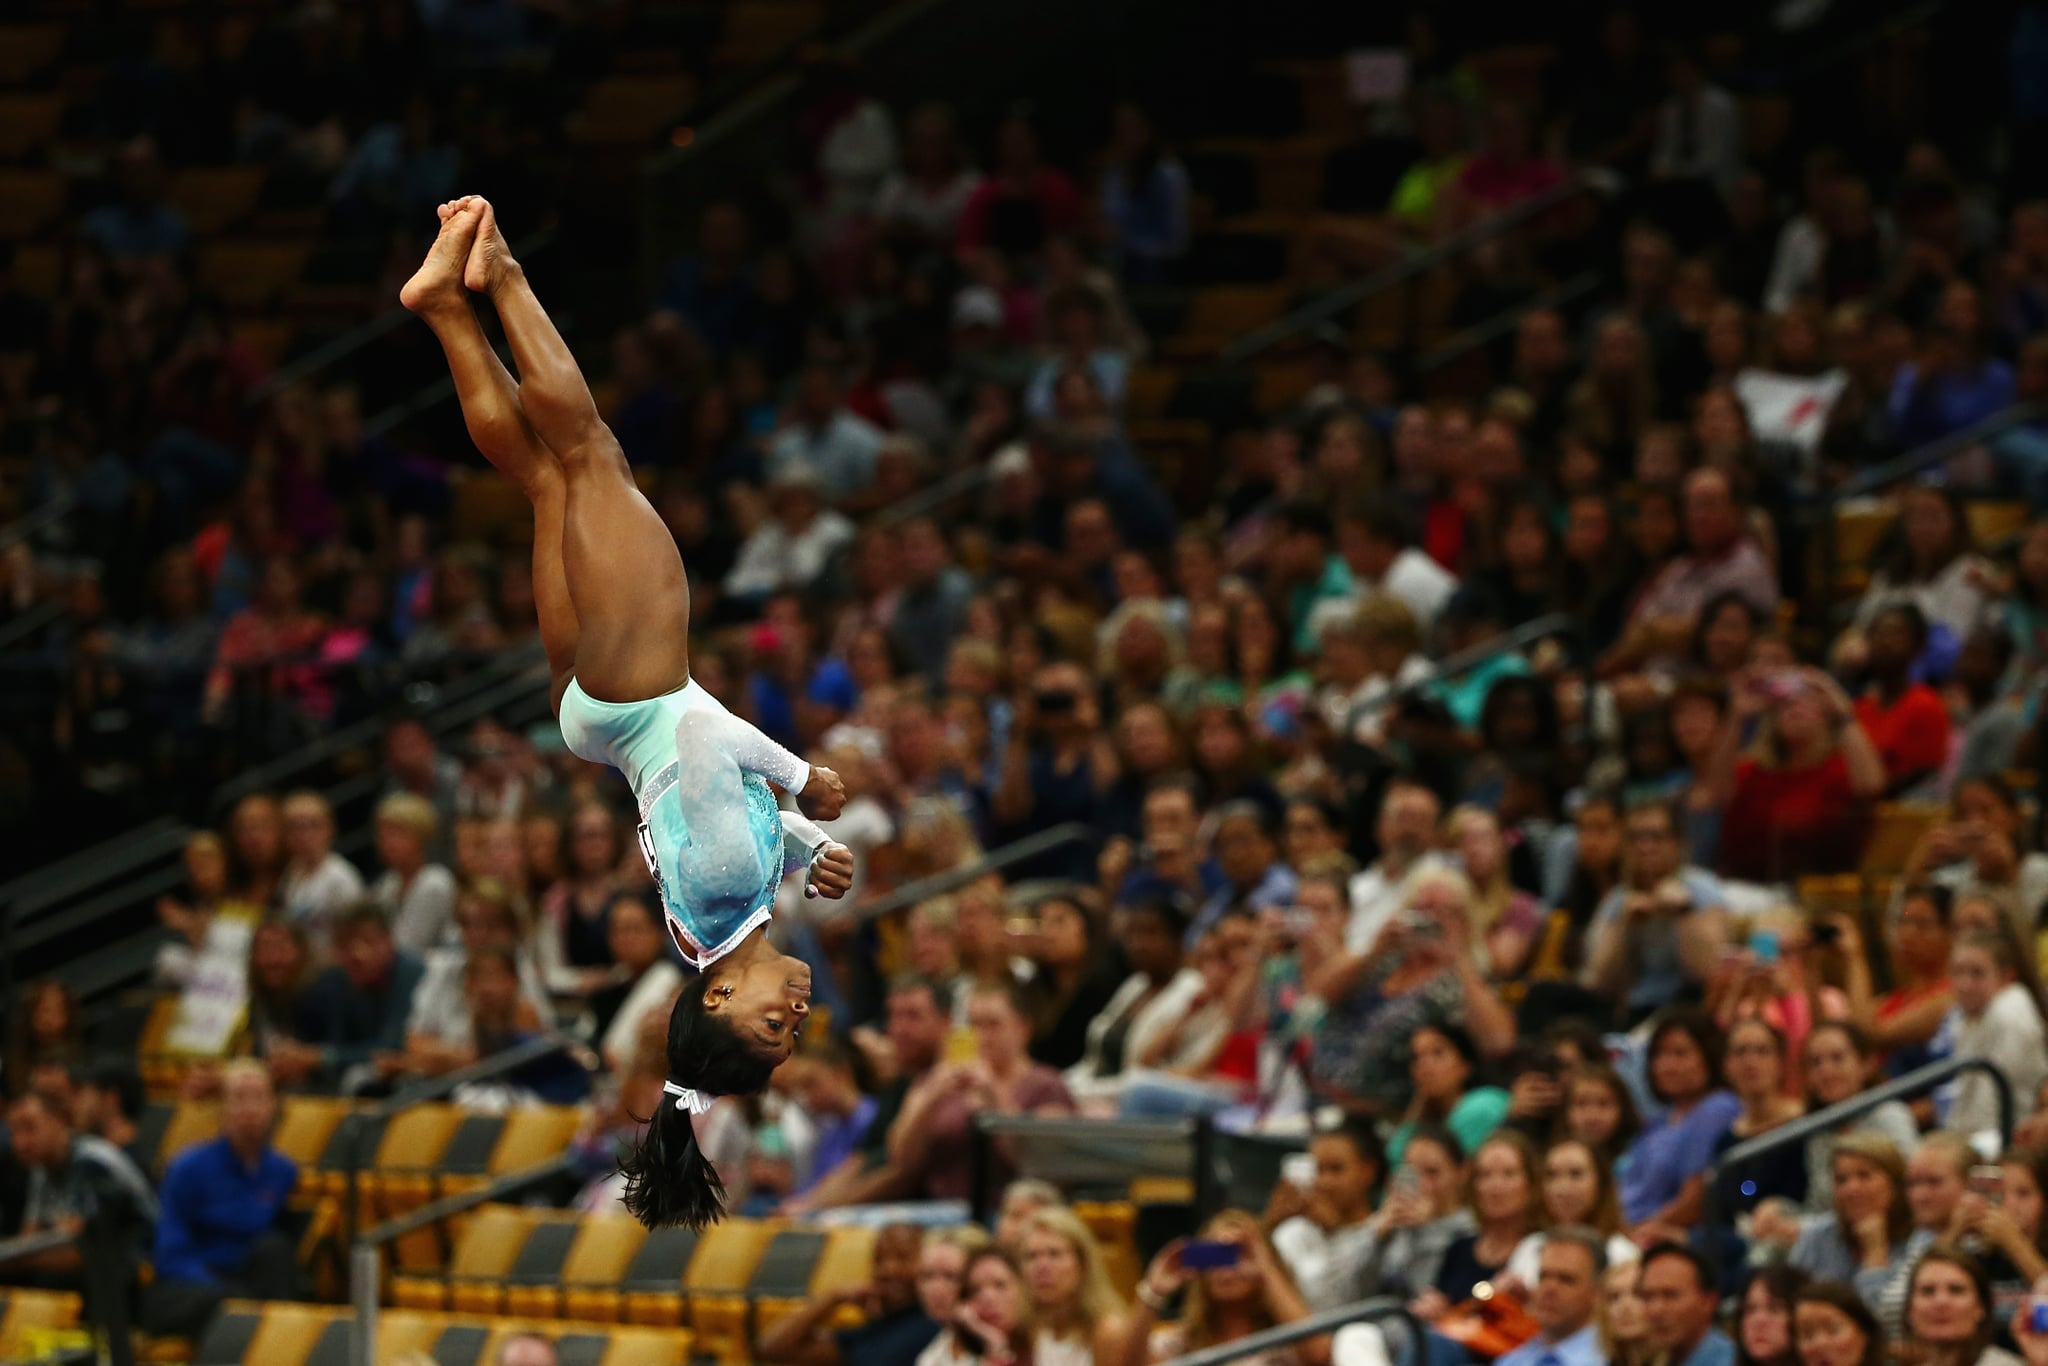 BOSTON, MA - AUGUST 19:  Simone Biles competes on the vault during day four of the U.S. Gymnastics Championships 2018 at TD Garden on August 19, 2018 in Boston, Massachusetts.  (Photo by Tim Bradbury/Getty Images)